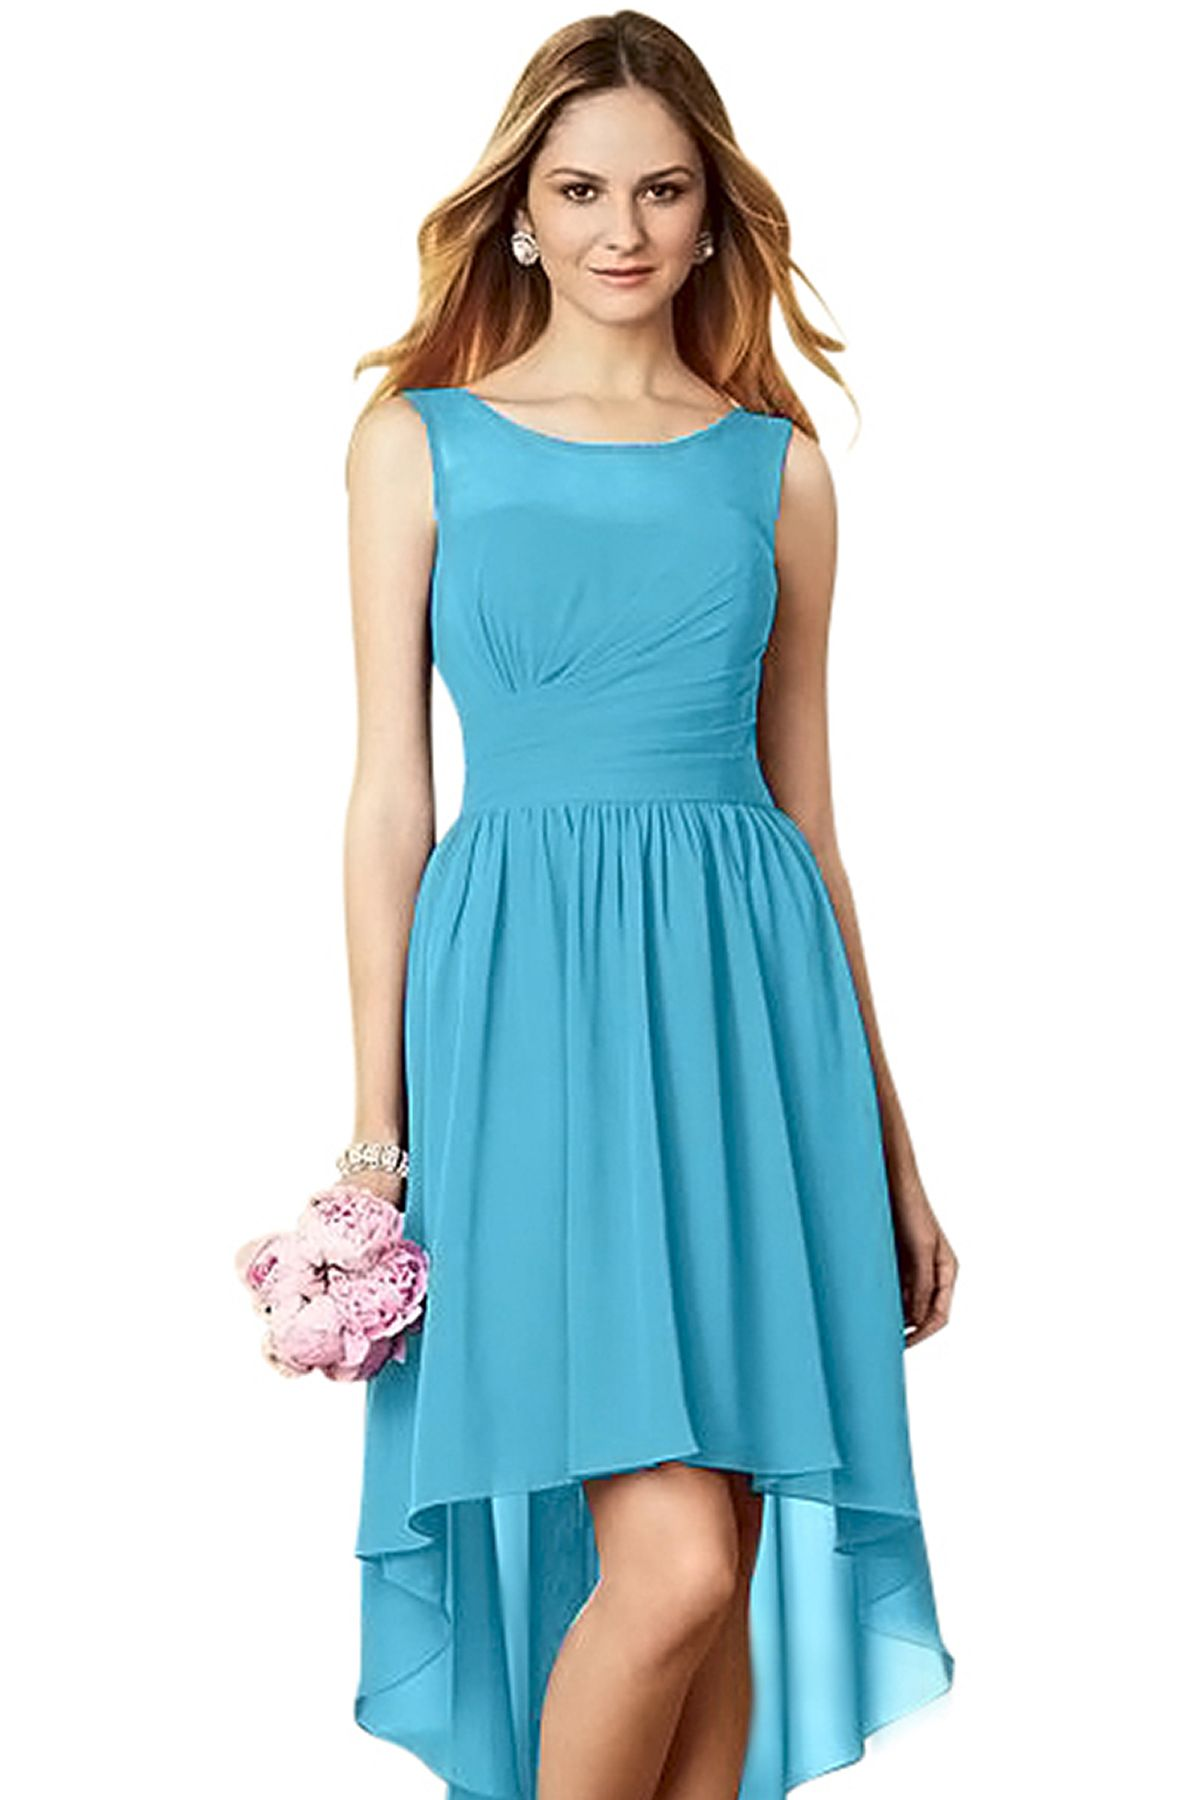 Alfred Angelo 7298 S Bridesmaid Dress in Turquoise in Chiffon ...